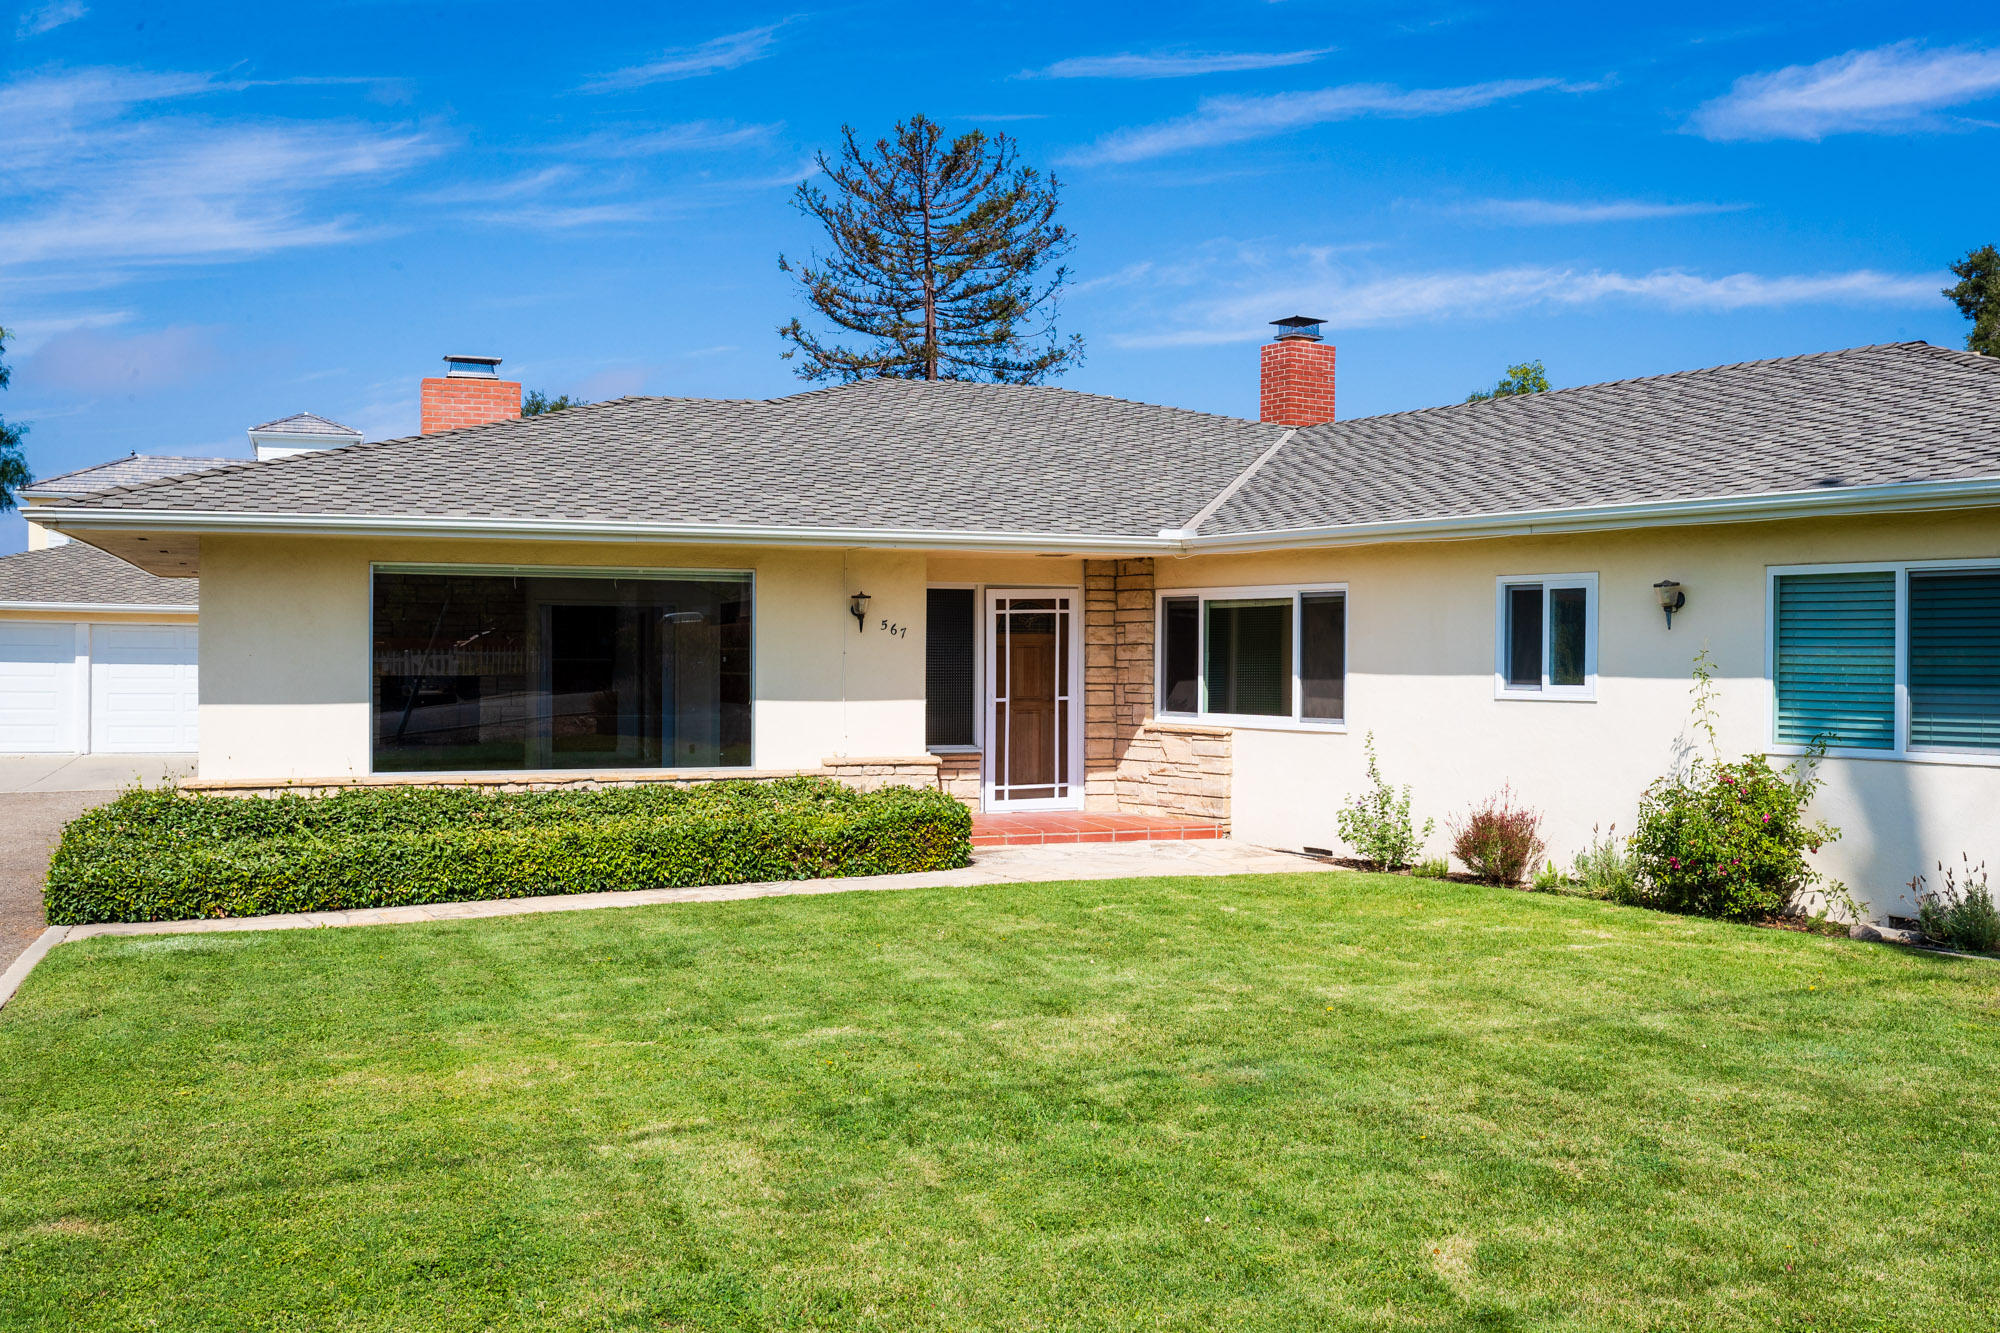 Property photo for 567 Pine St Solvang, California 93463 - 18-3131